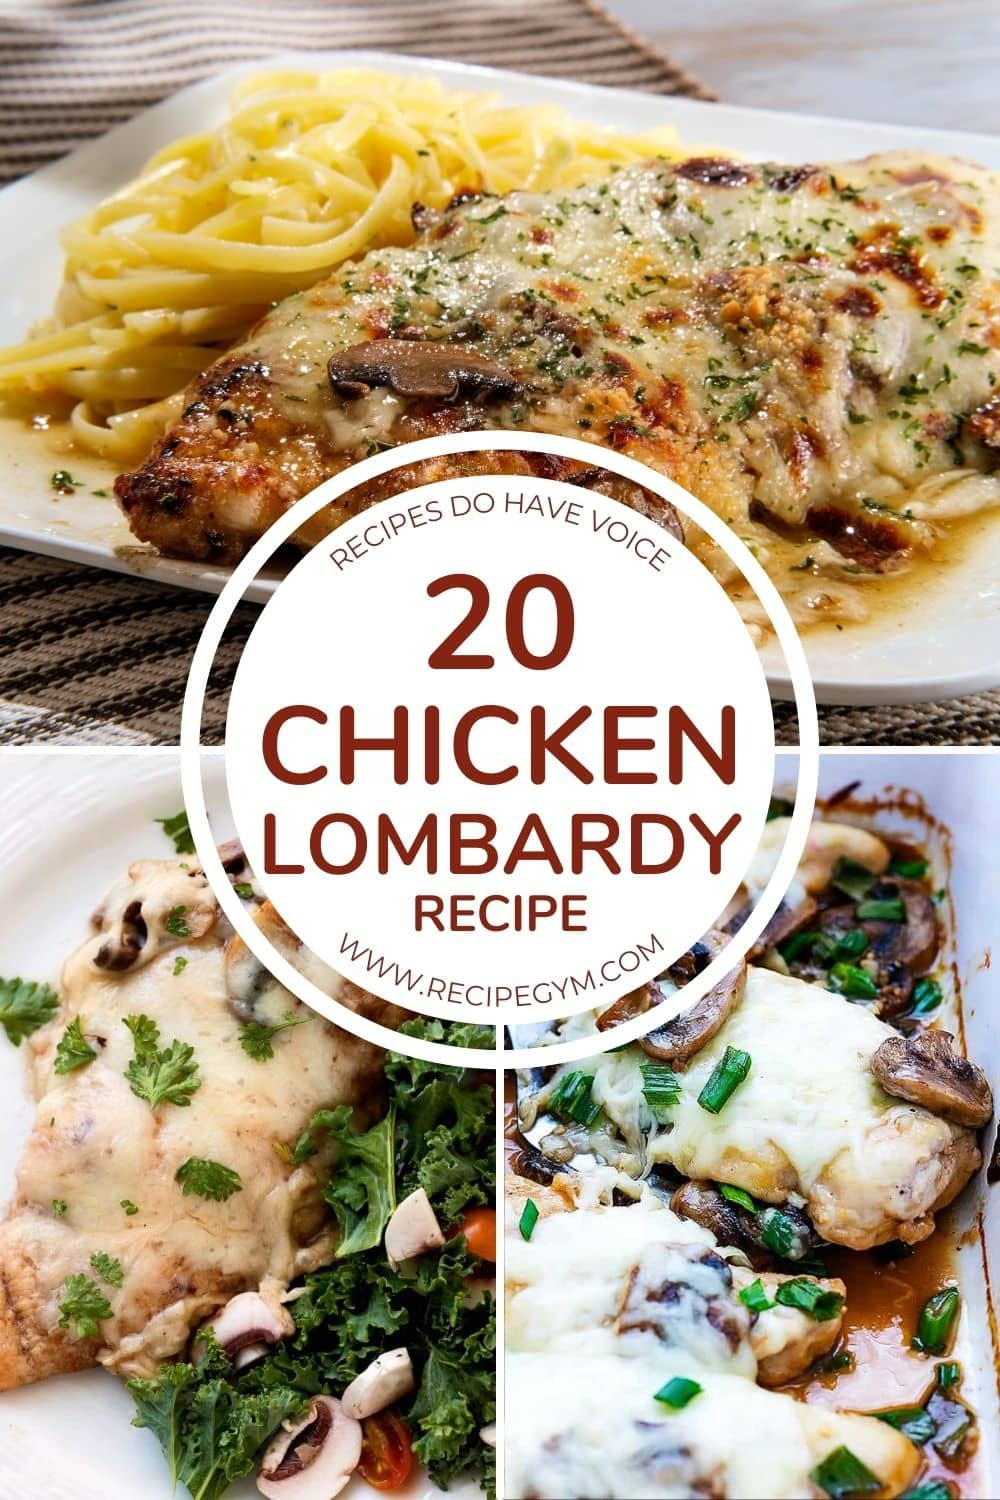 20 chicken lombardy recipe